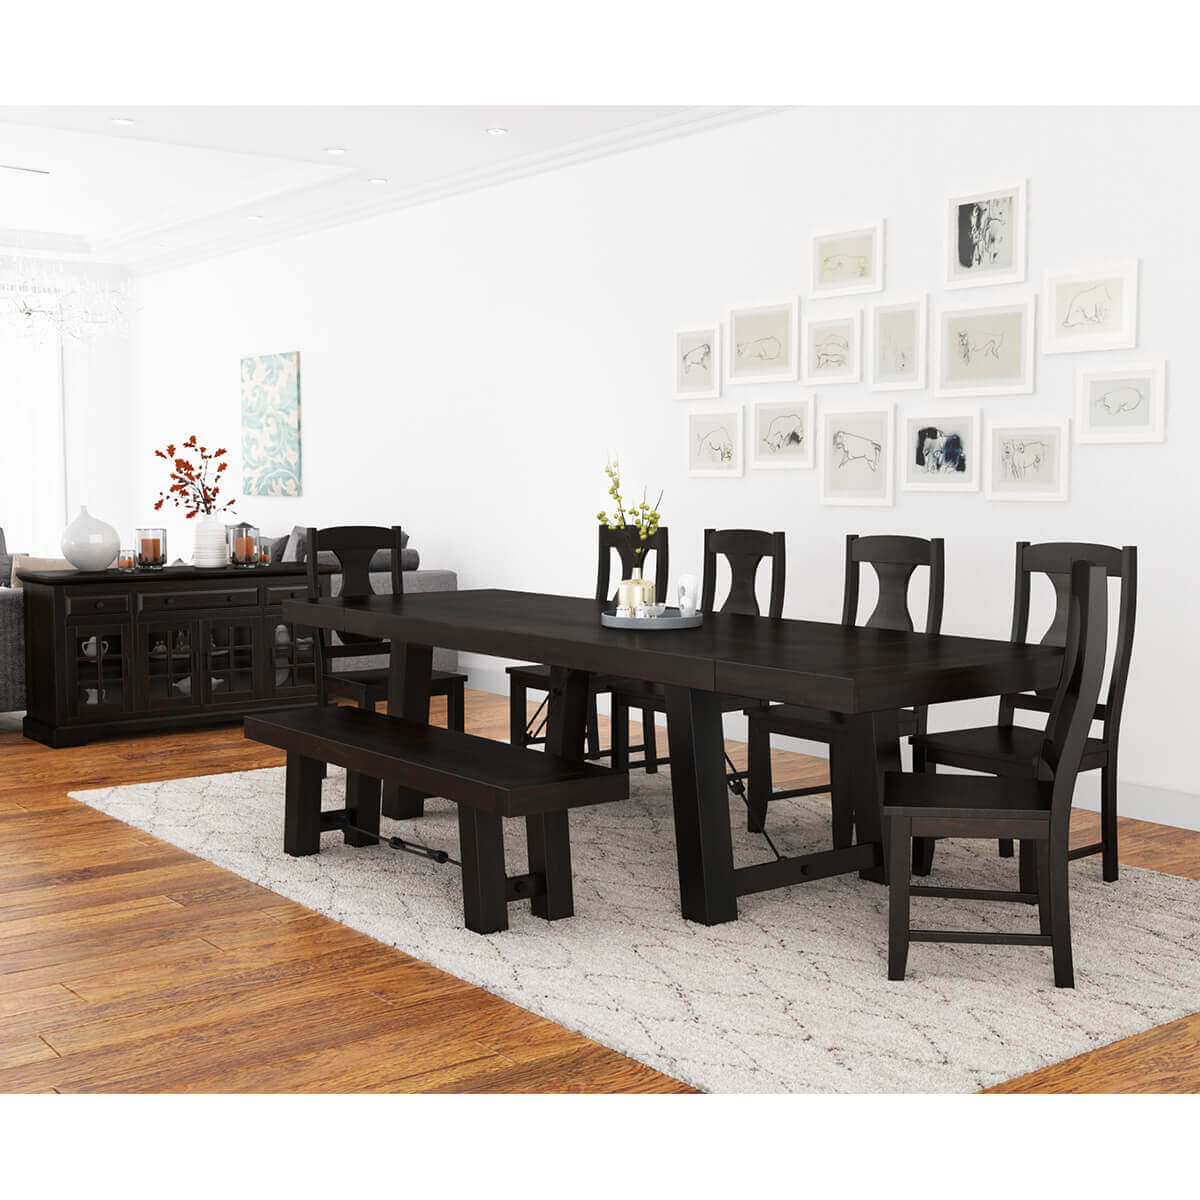 Dining Room Set With Extension tirana rustic solid wood 9 piece large extensions dining room set